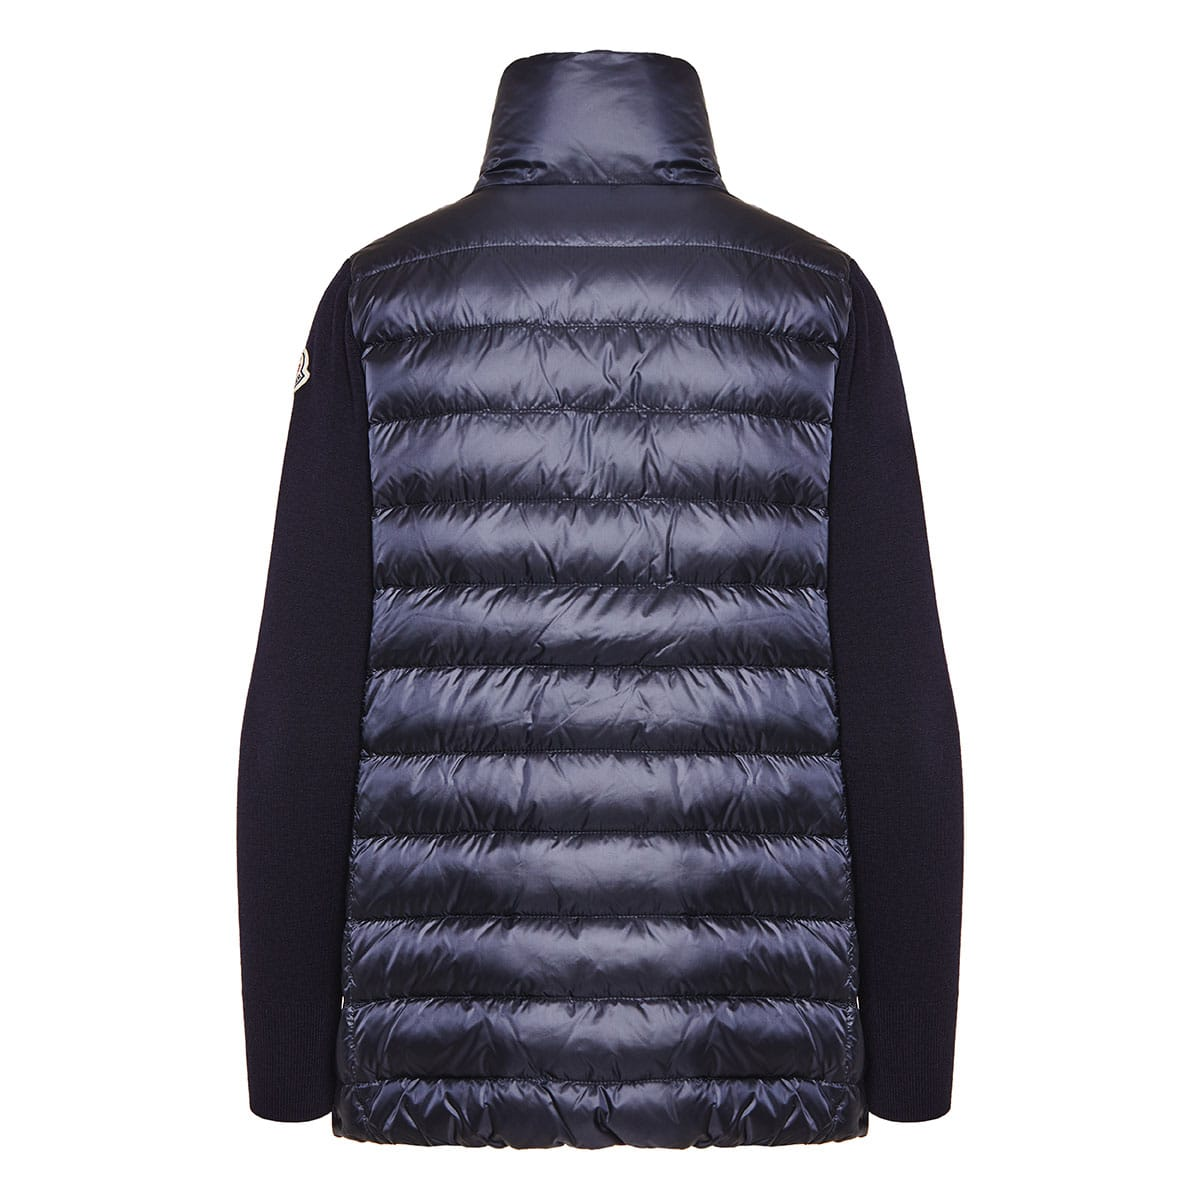 Wool-sleeved quilted puffer jacket